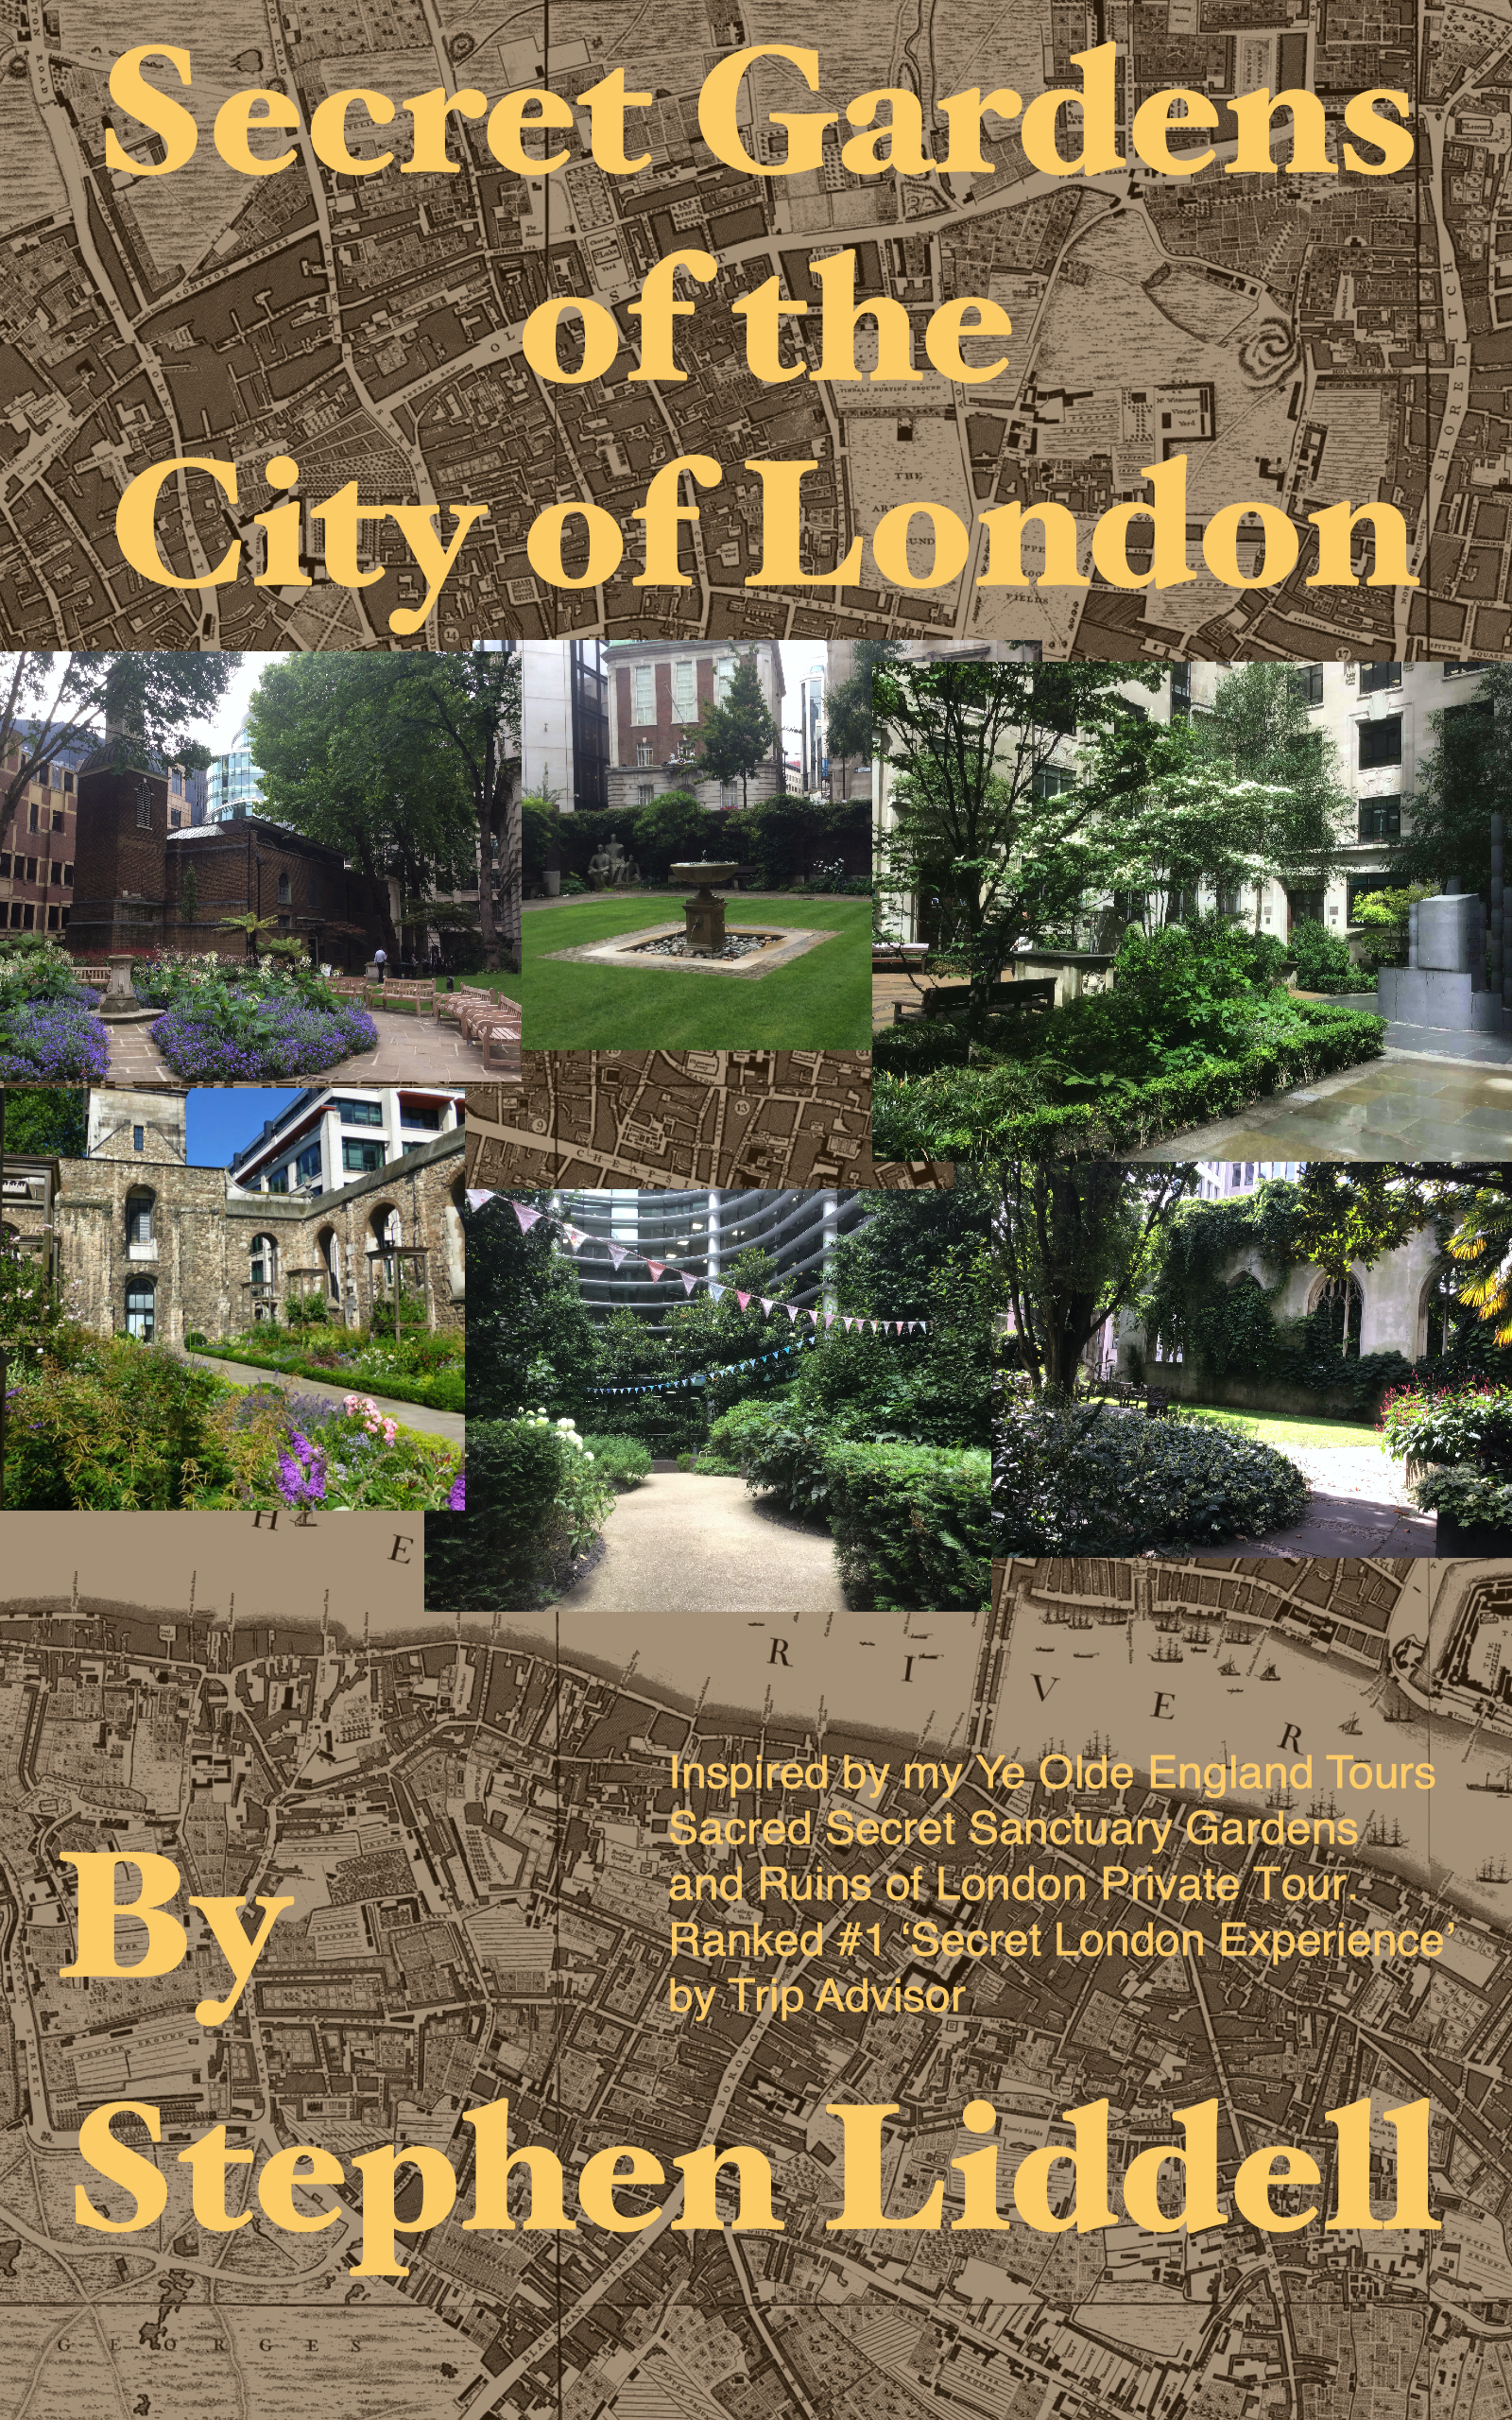 Secret Gardens of the City of London Kindle Cover